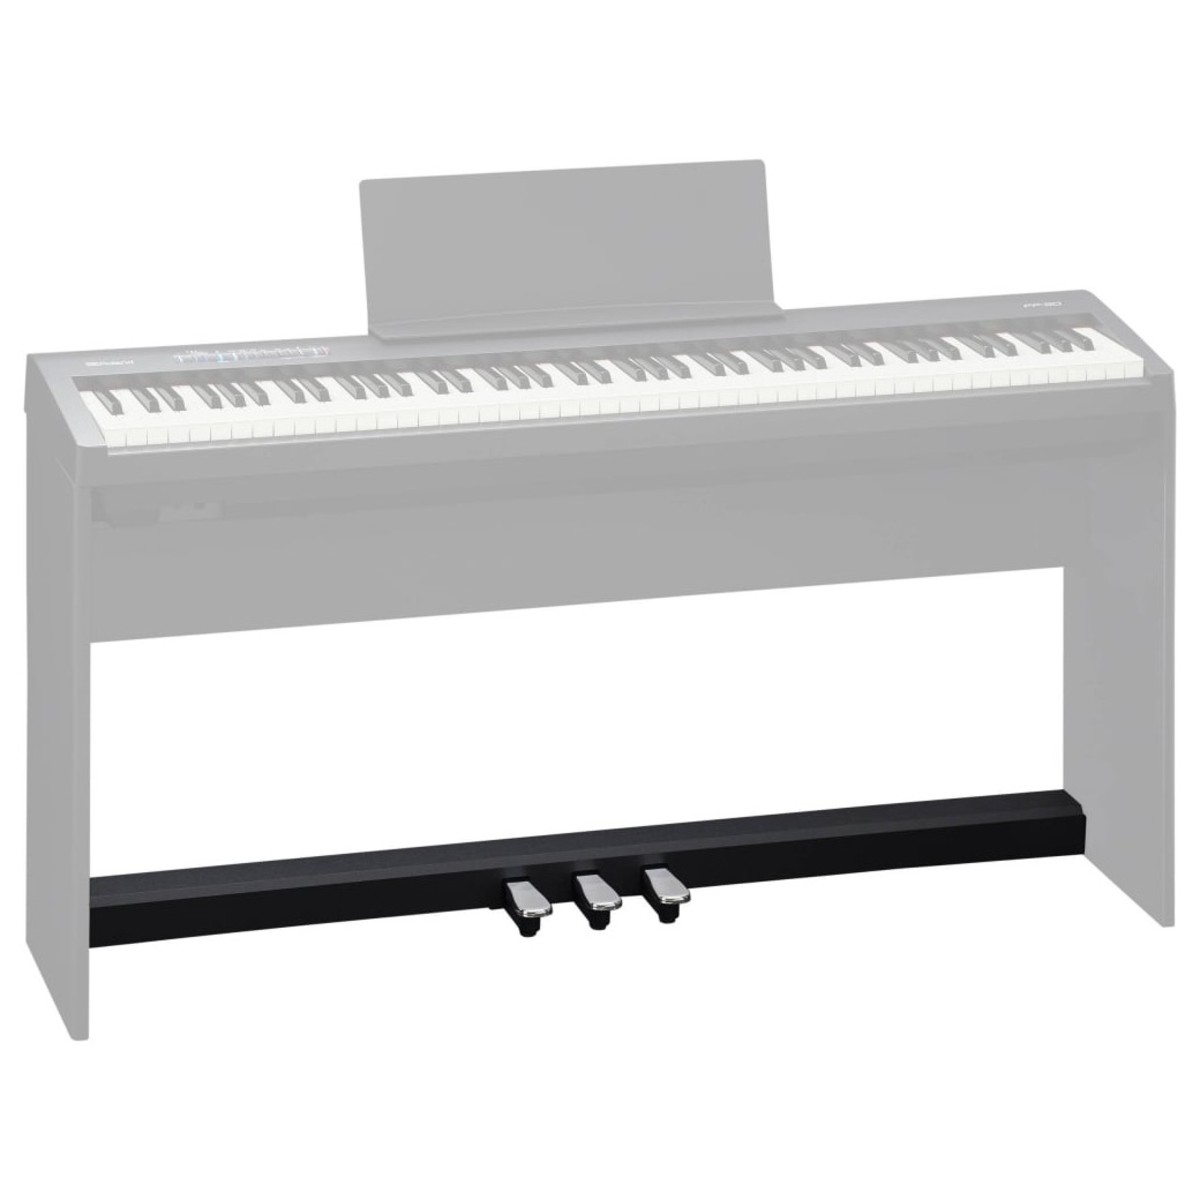 roland kpd 70 triple pedal for fp 30 digital piano black b stock at gear4music. Black Bedroom Furniture Sets. Home Design Ideas